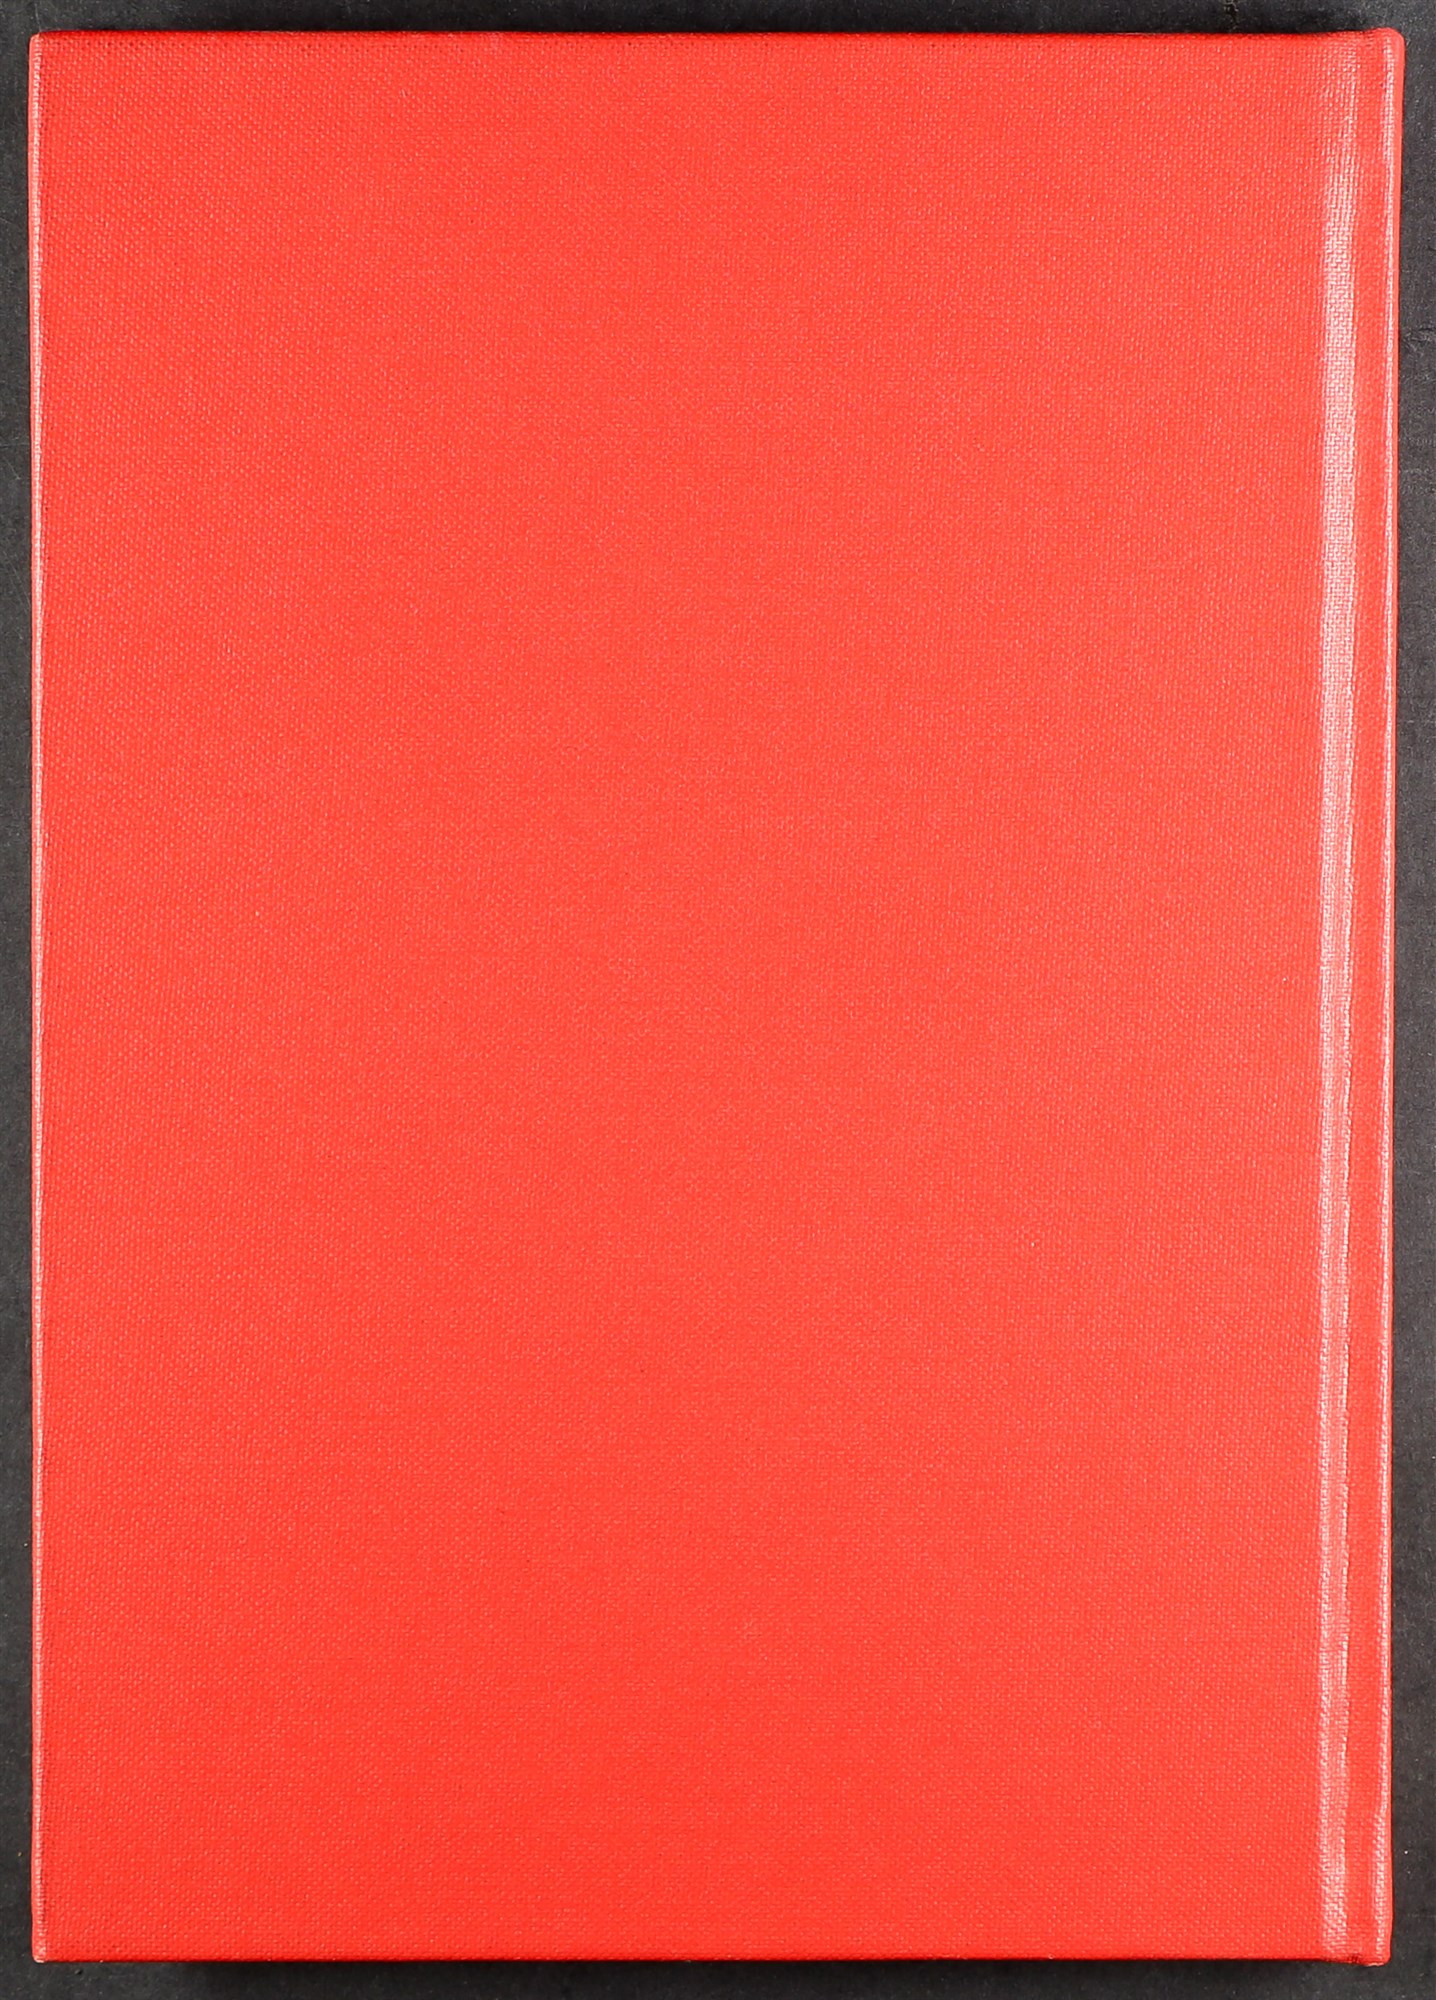 MADAME JOSEPH FORGED POSTMARKS book by D. Worboys & R. B. West, 1994, numbered 255 of an edition of - Image 3 of 5